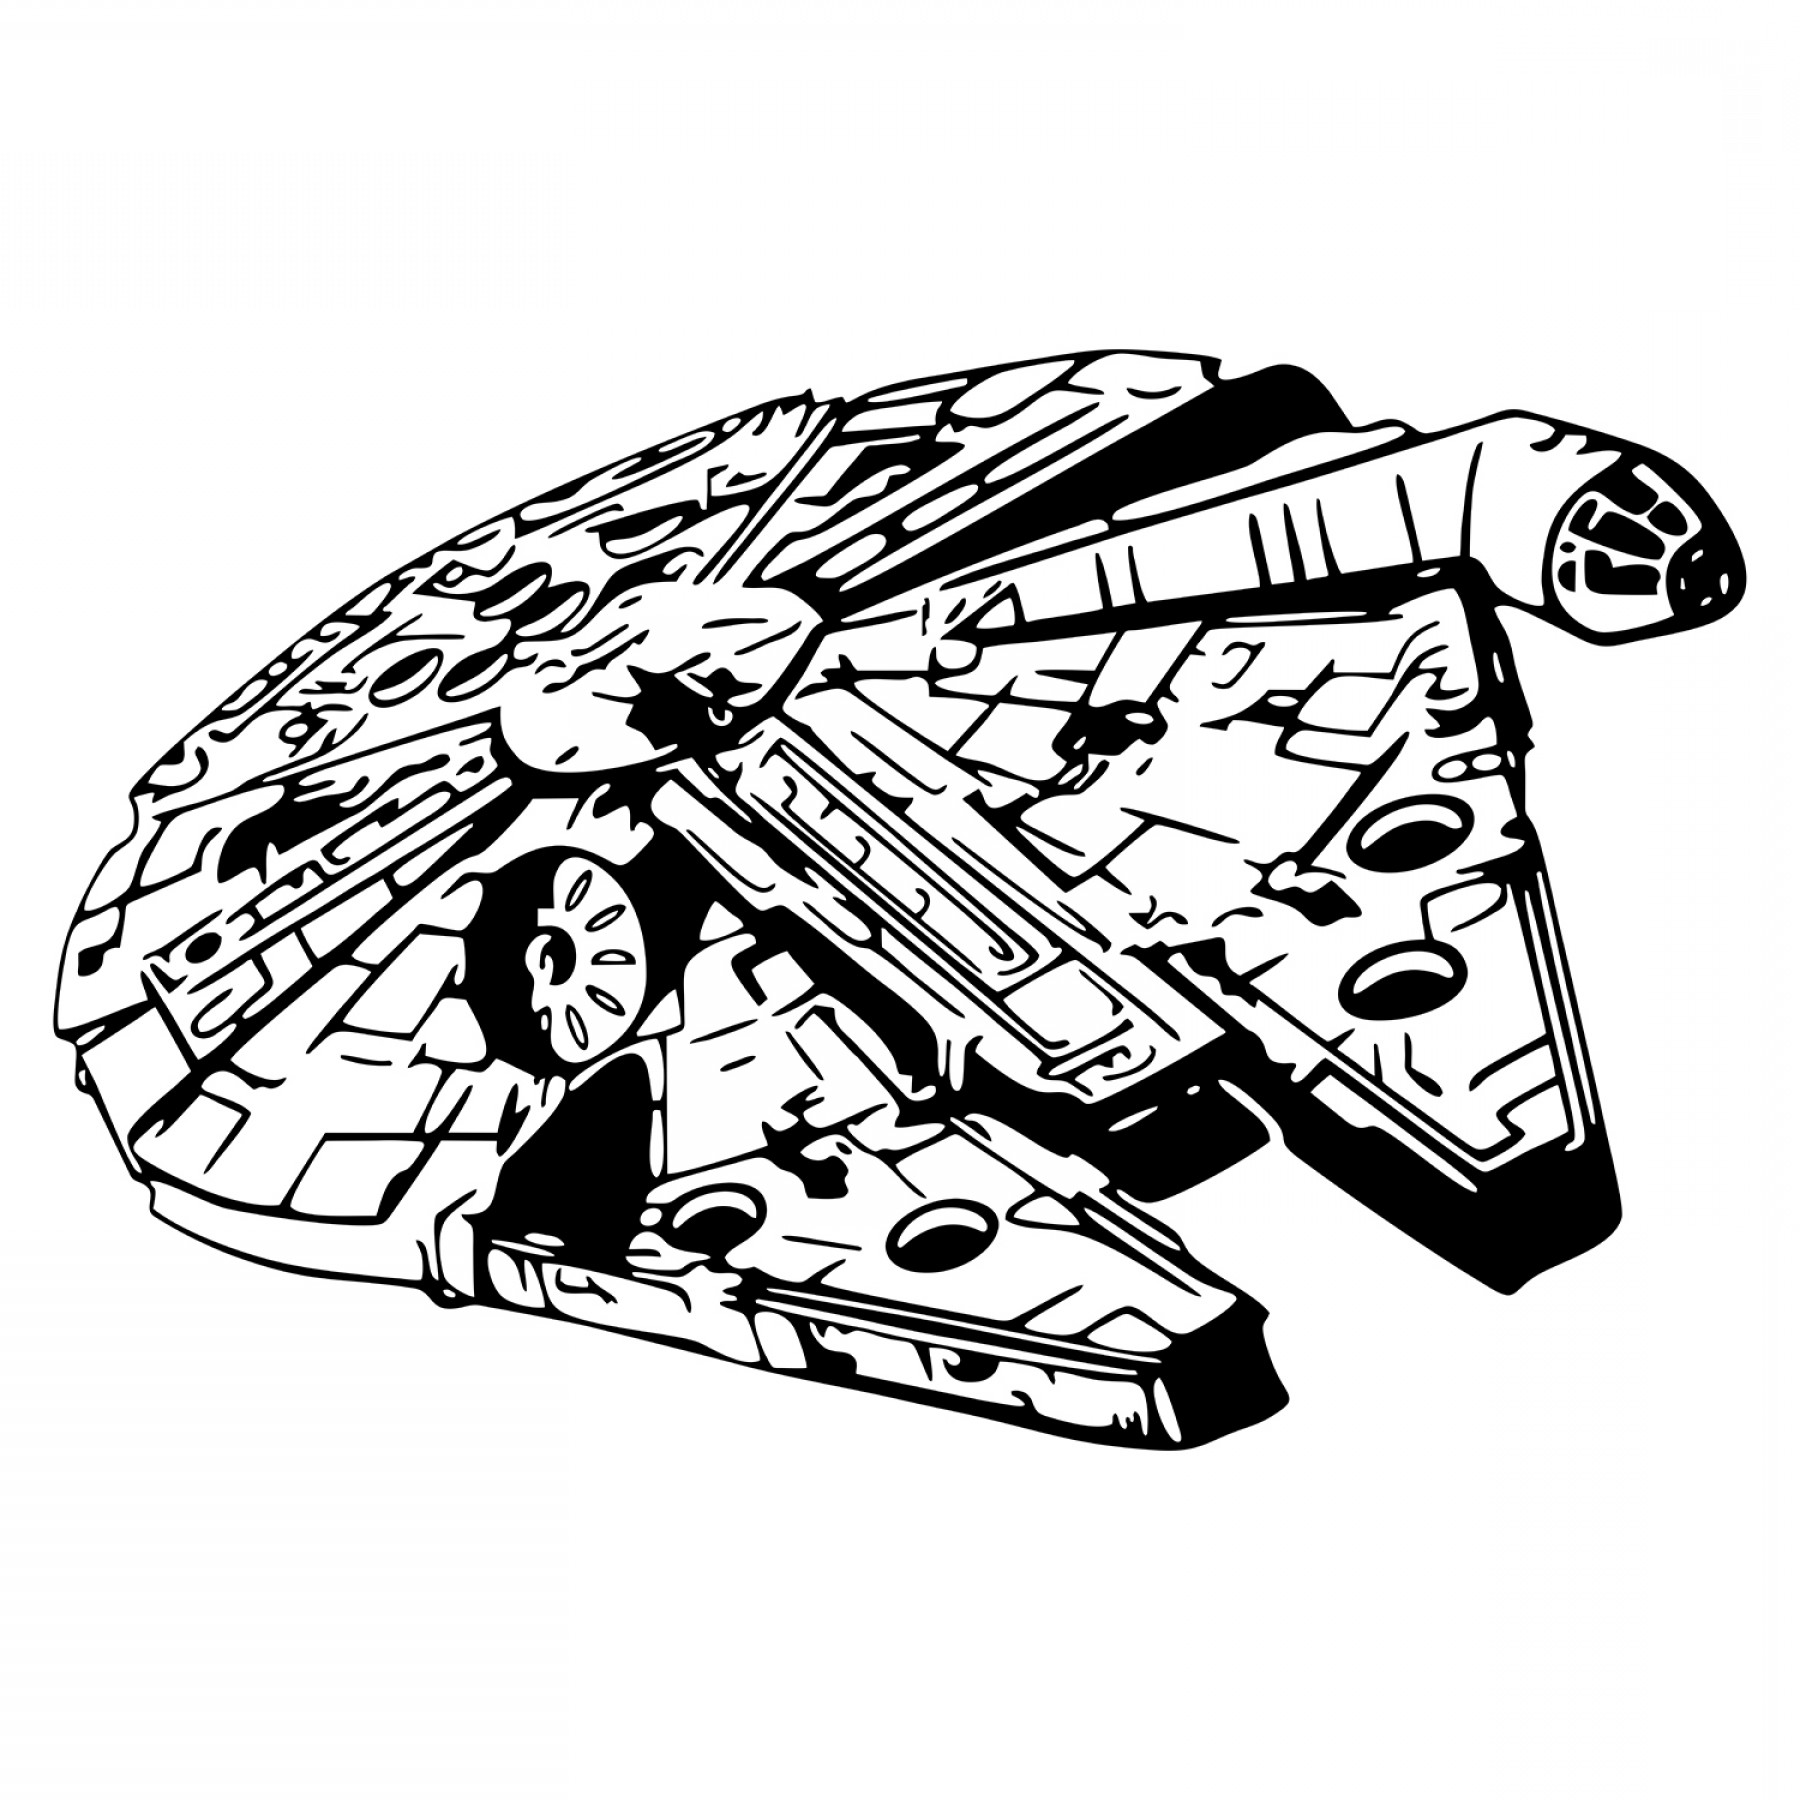 graphic transparent library Star wars falcon spacecraft. Millennium clipart black and white.